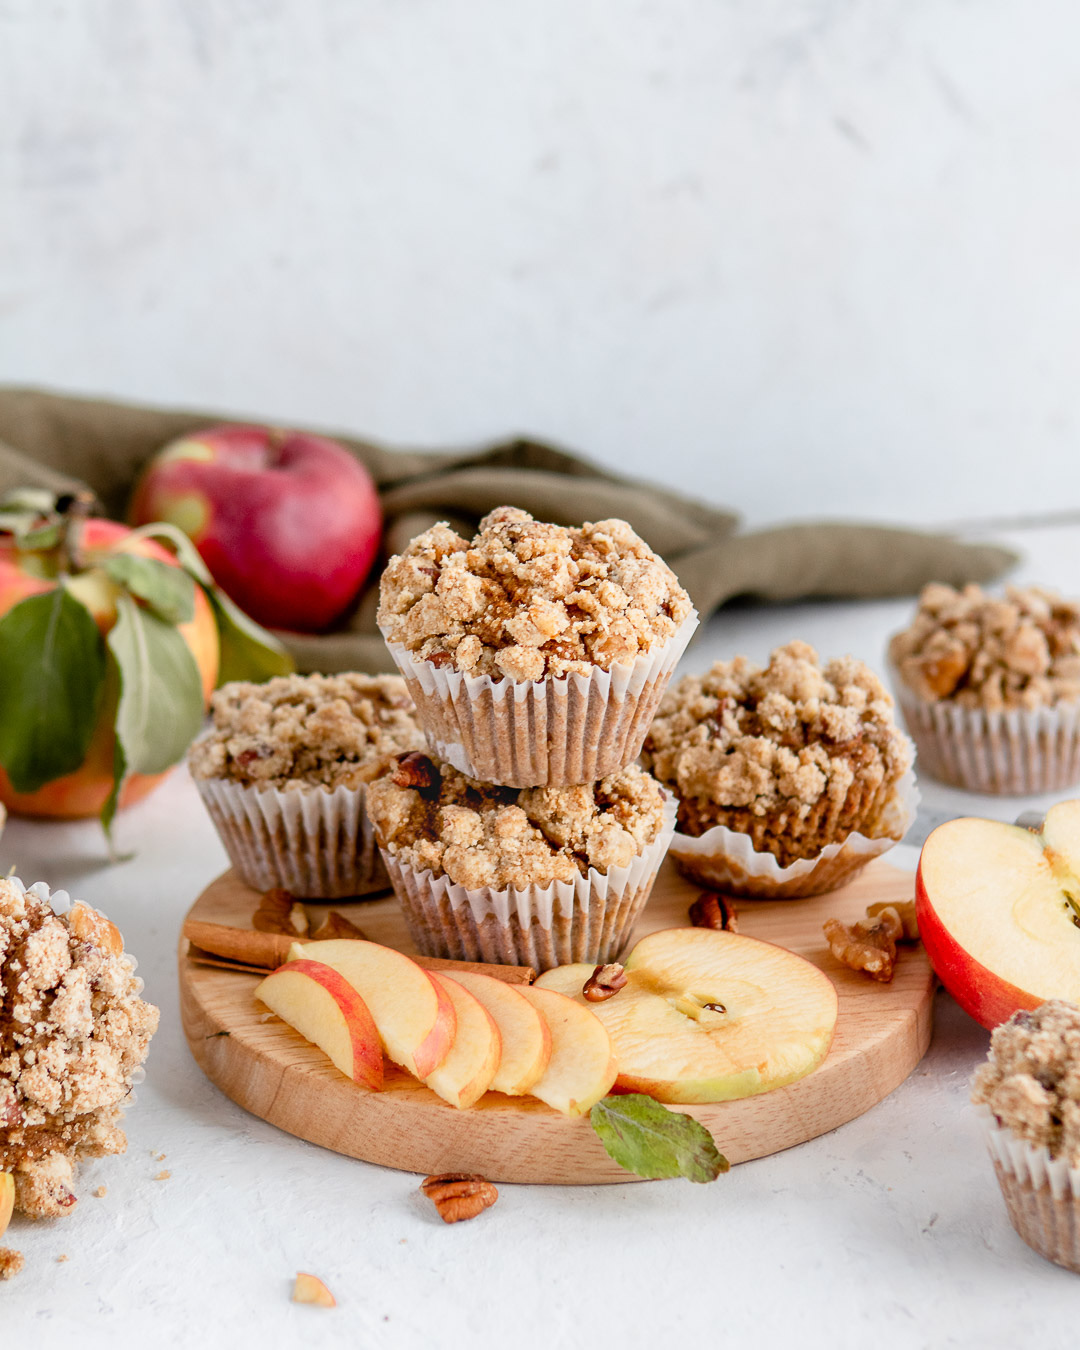 Stacked muffins on a cutting board with sliced apples